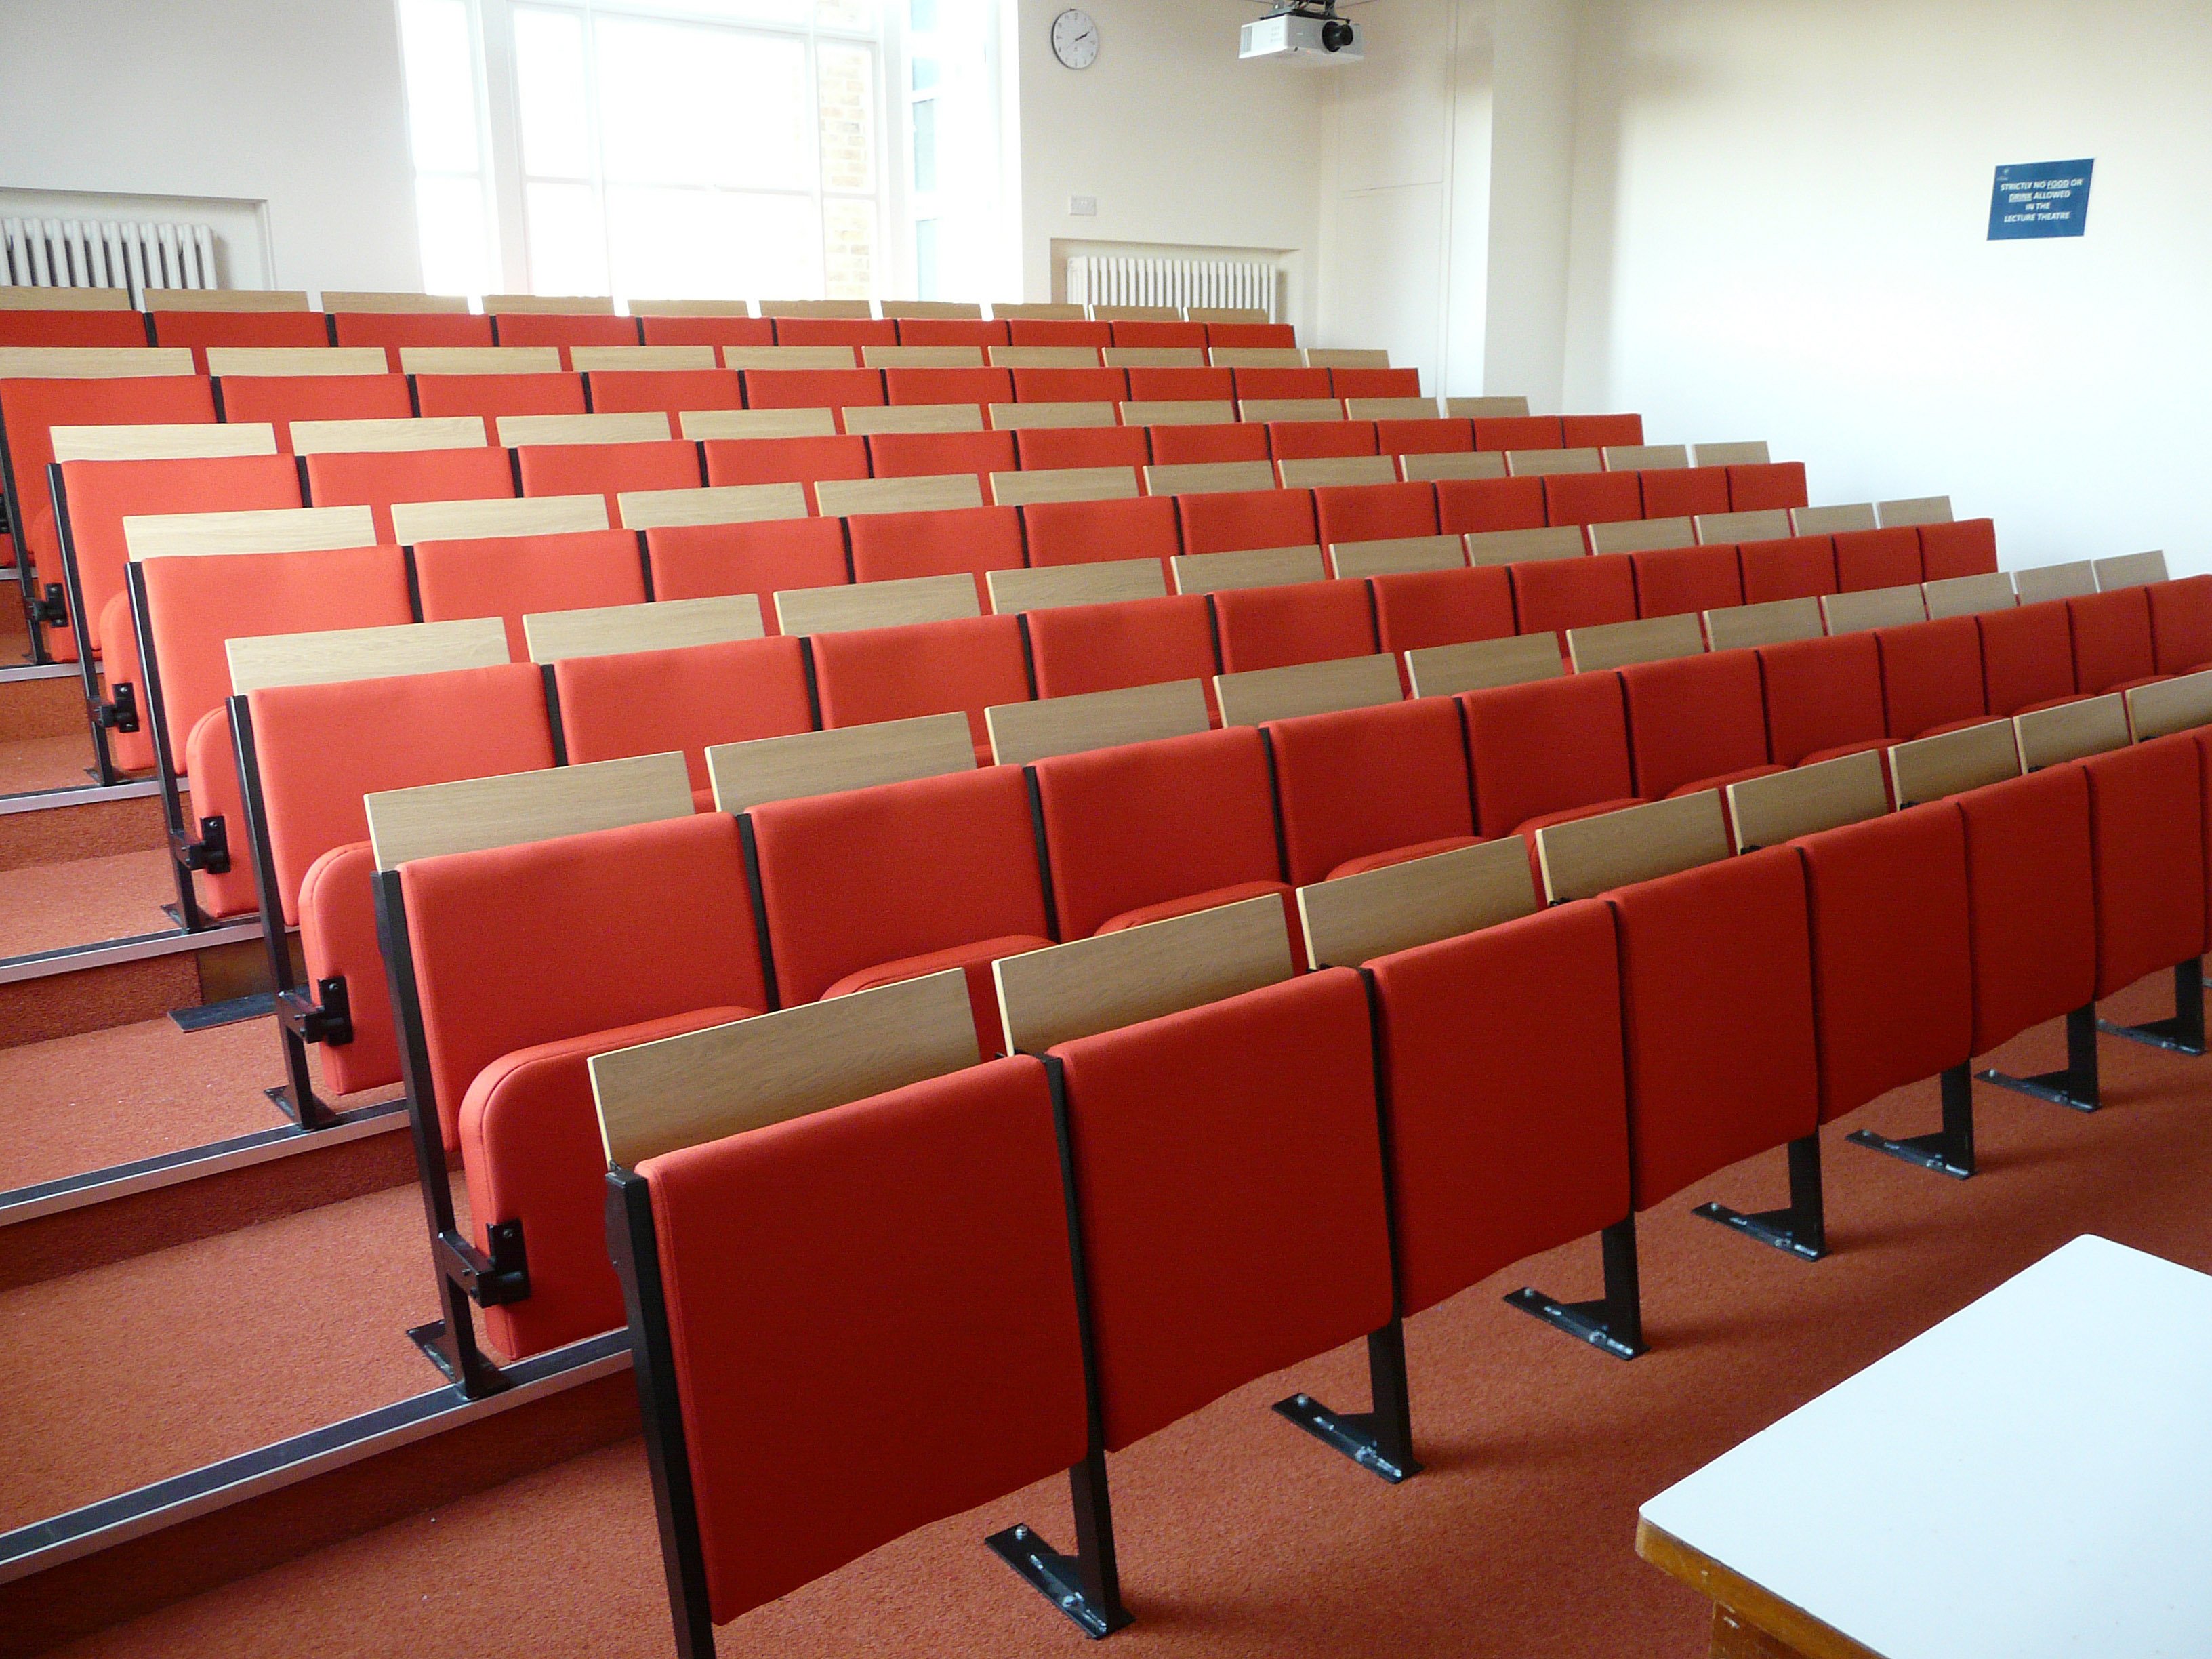 Diploma lecture theatre seating bespoke tailored with individual flip up desks